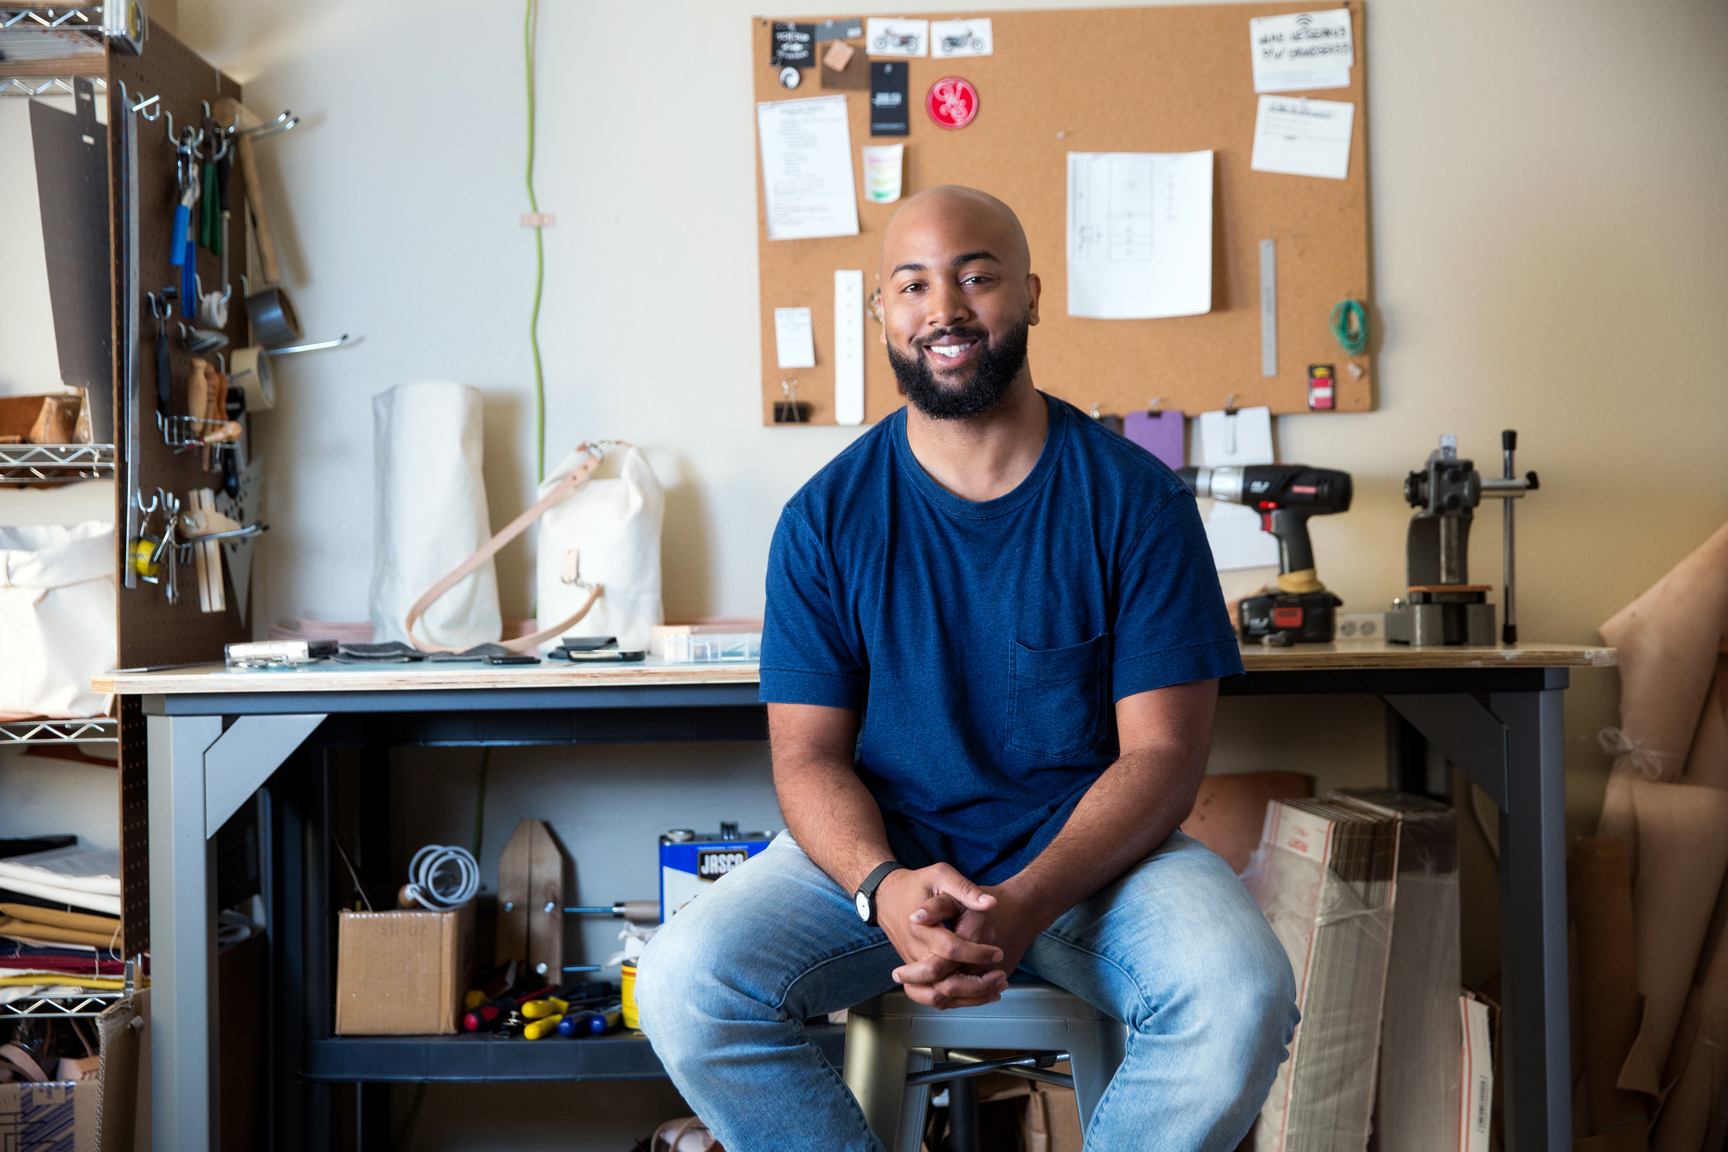 In his home workshop in the Garden District, Damien Mitchell sketches designs and fabricates leather wallets, bags, pouches and accents from scratch. He gets around the area on foot or his motorcycle. Photo by Collin Richie.